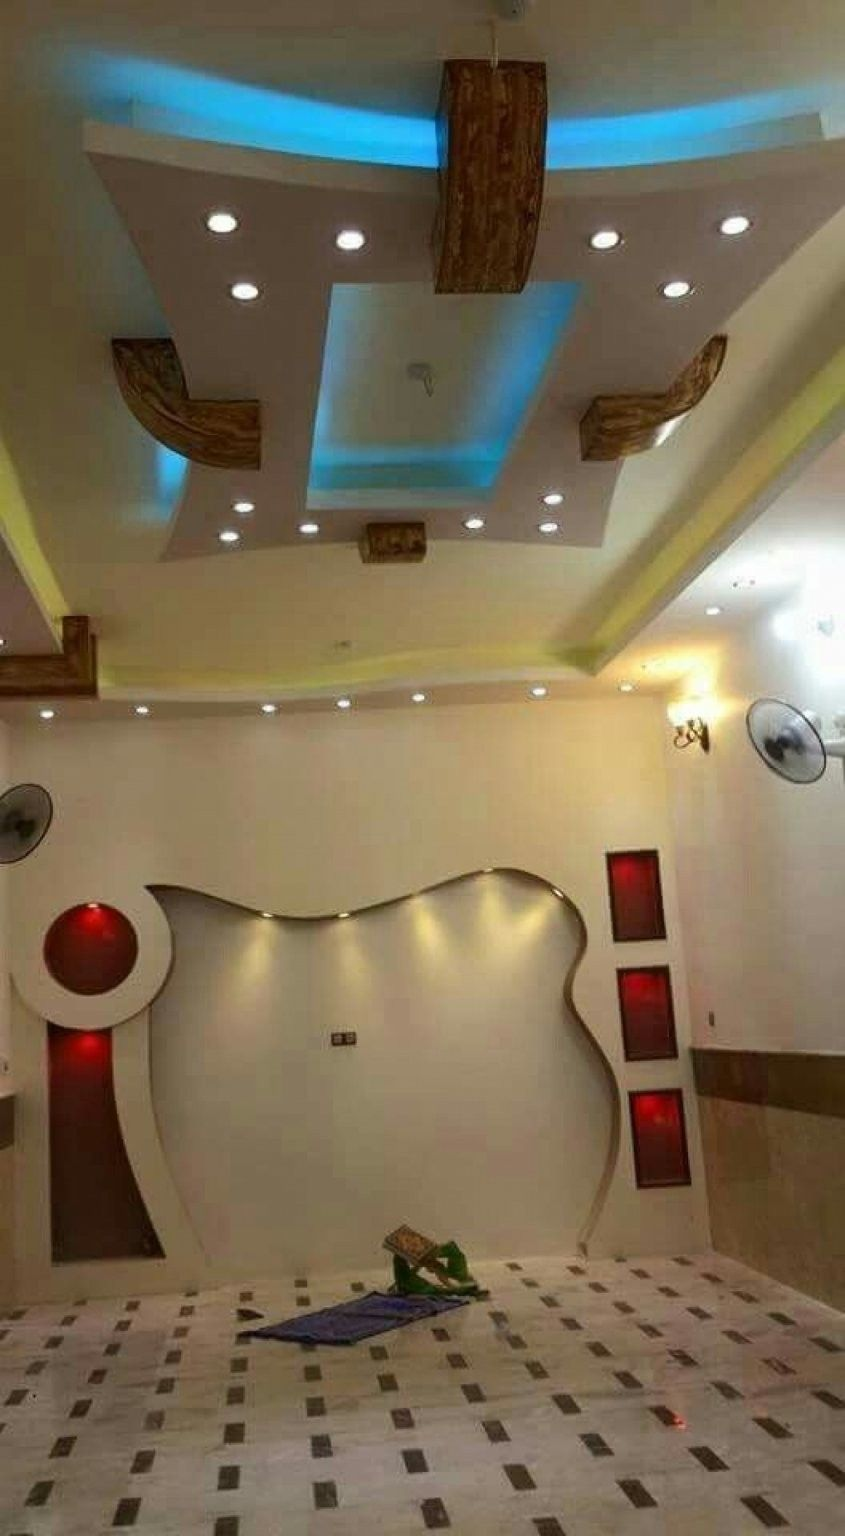 Hdb Study Room Design Ideas: Pin By Civil Engineering Discoveries On Ceiling Design